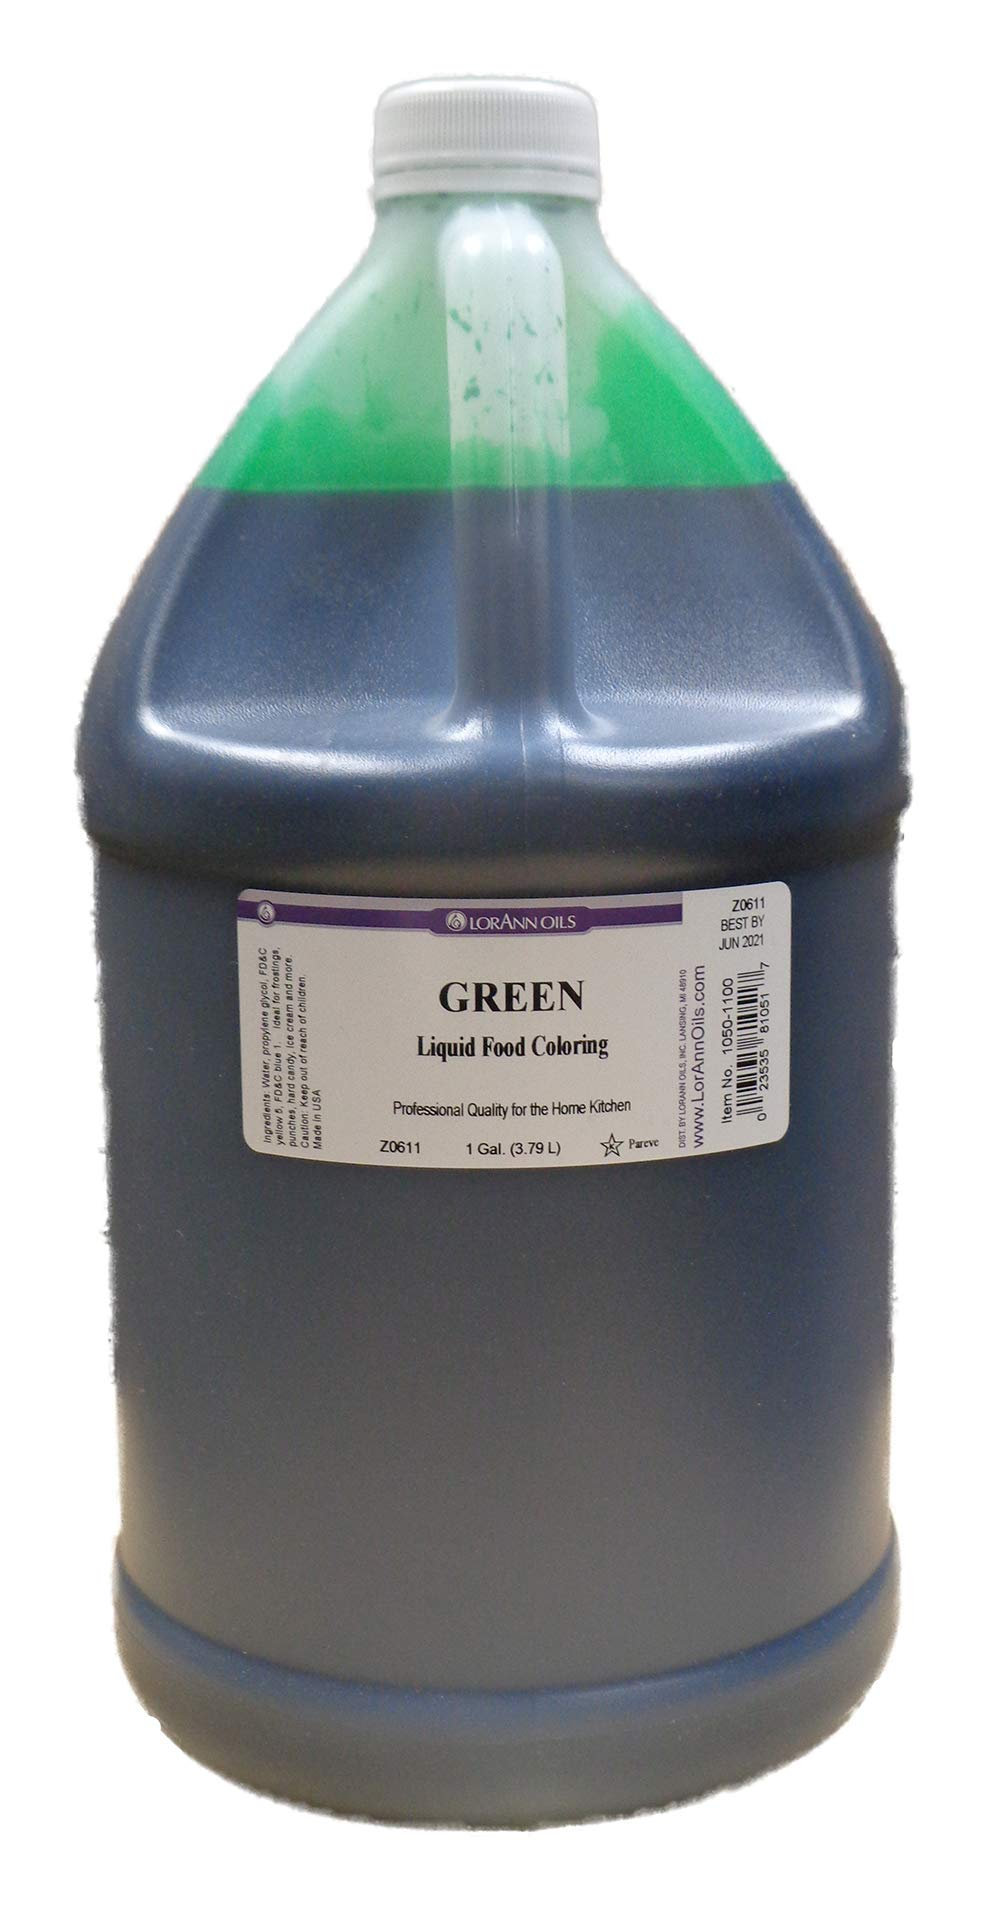 LorAnn Green Liquid Food Color, Gallon Size by Unknown